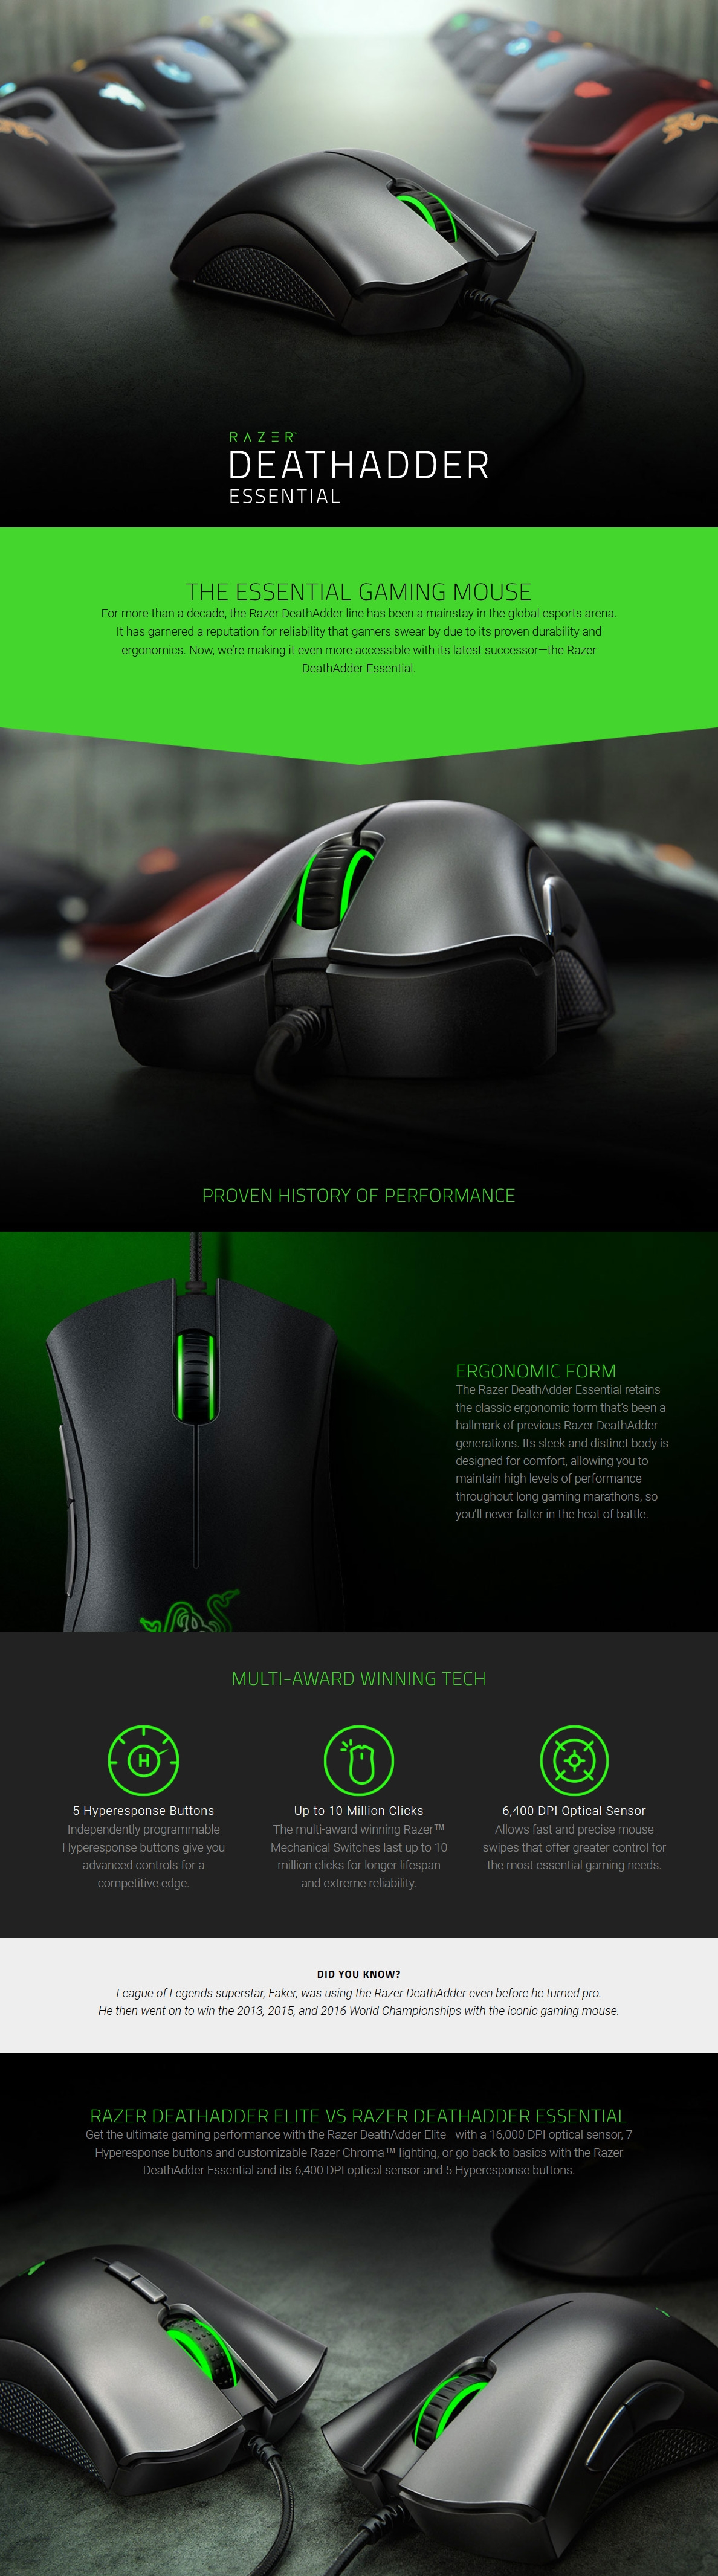 Razer DeathAdder Essential Ergonomic Optical Gaming Mouse RZ01 02540100 R3M1